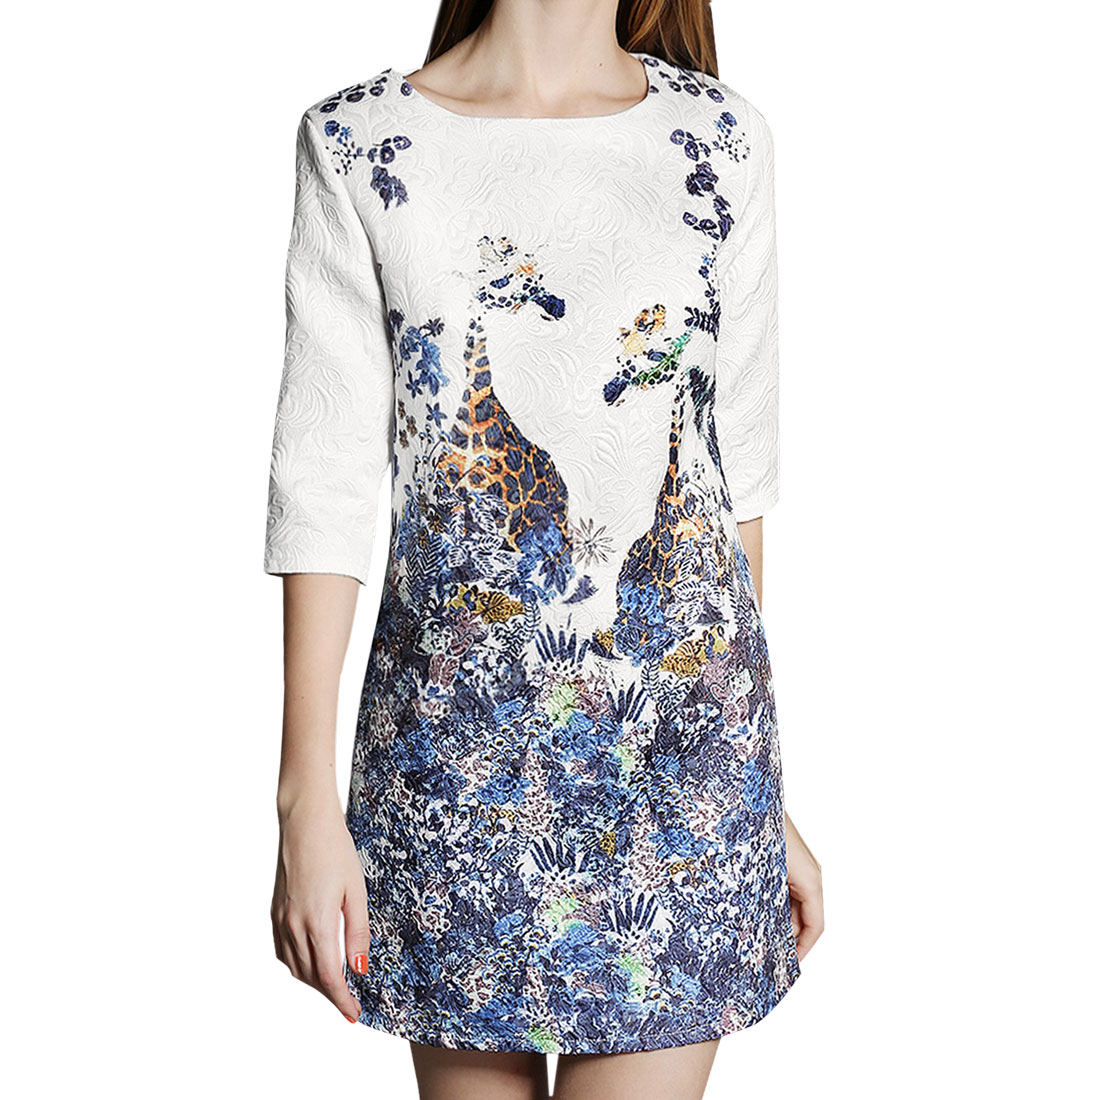 Women's 1/2 Sleeves Giraffe Pattern Flower Embossed Tunic Dress White (Size S / 4)